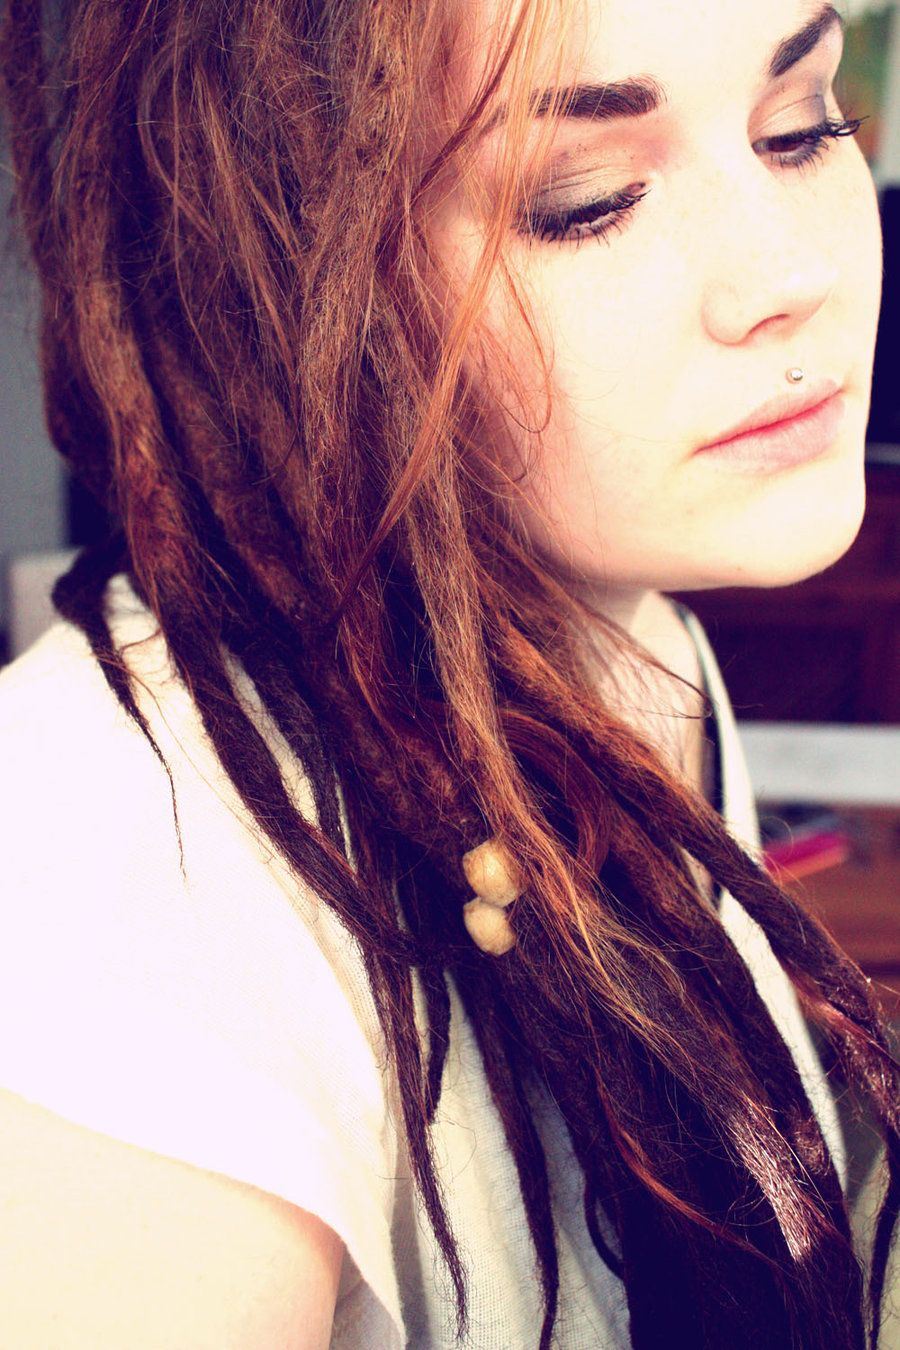 Eyebrow and nose piercing  Pin by Mrs Lady on LoCs  Pinterest  Medusa piercing Dreadlocks